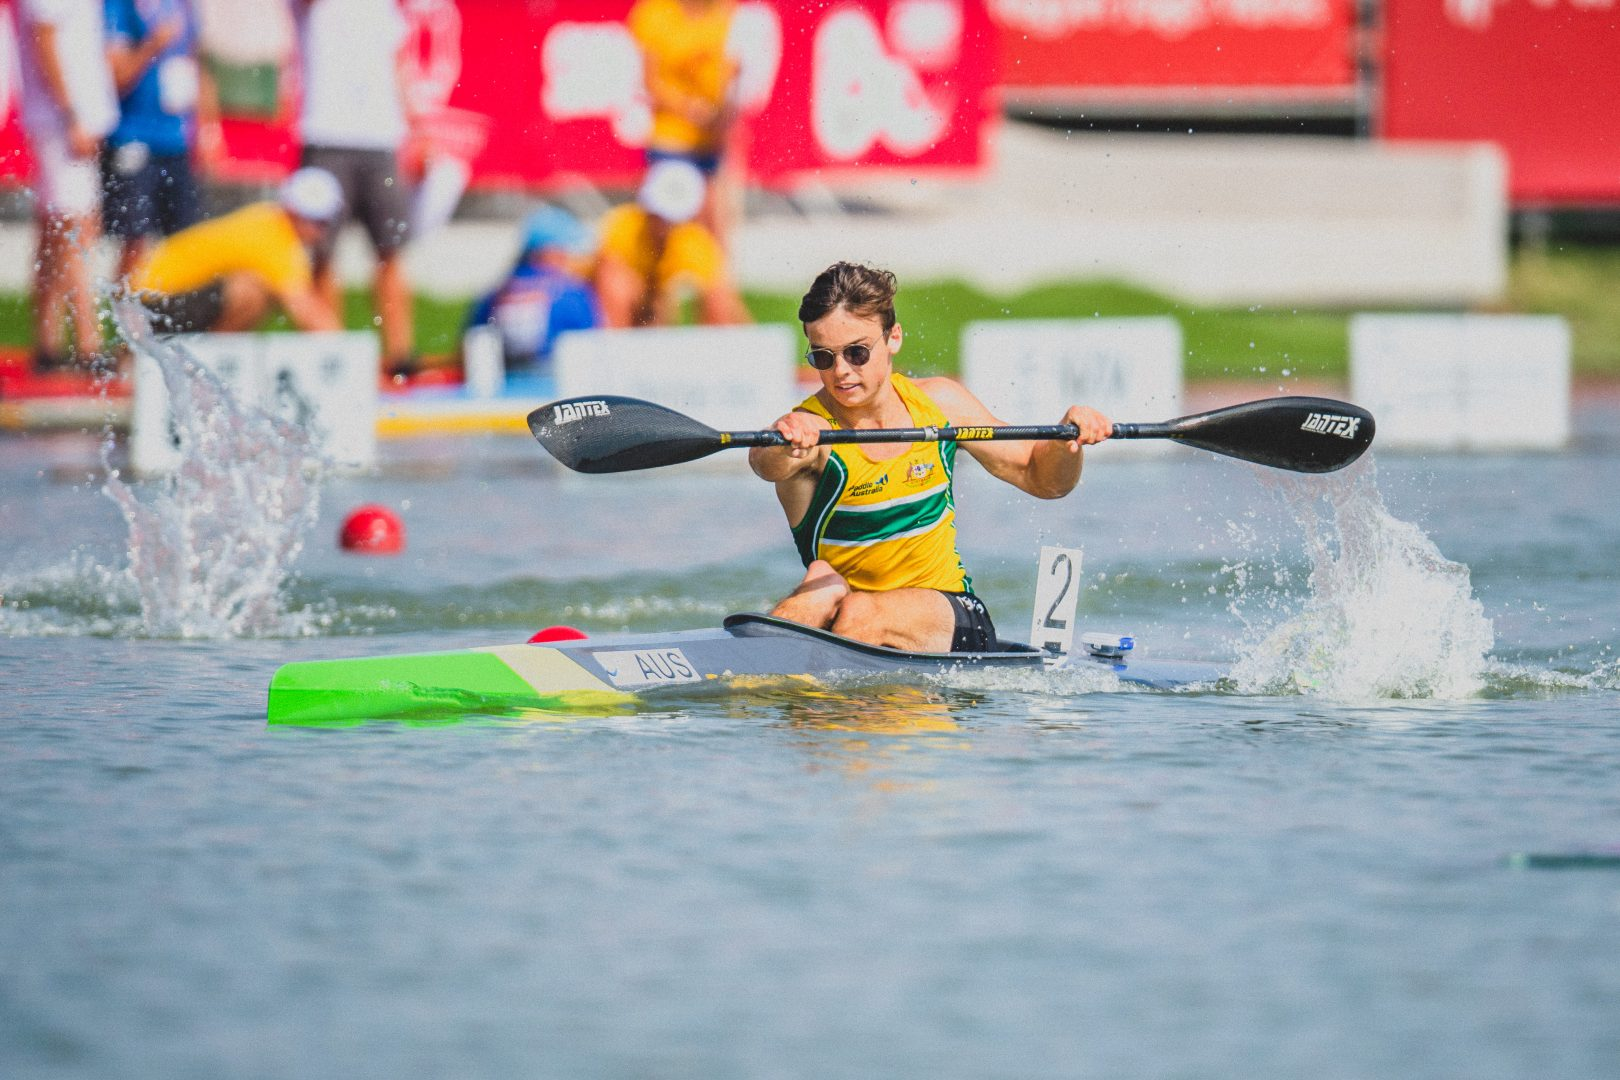 Dylan Littlehales, Australia Mens Paracanoe MKL3  International Canoe Federation World Championships, Szeged, Hungary. Saturday 24 August 2019  © Copyright photo Steve McArthur / Paddle Australia